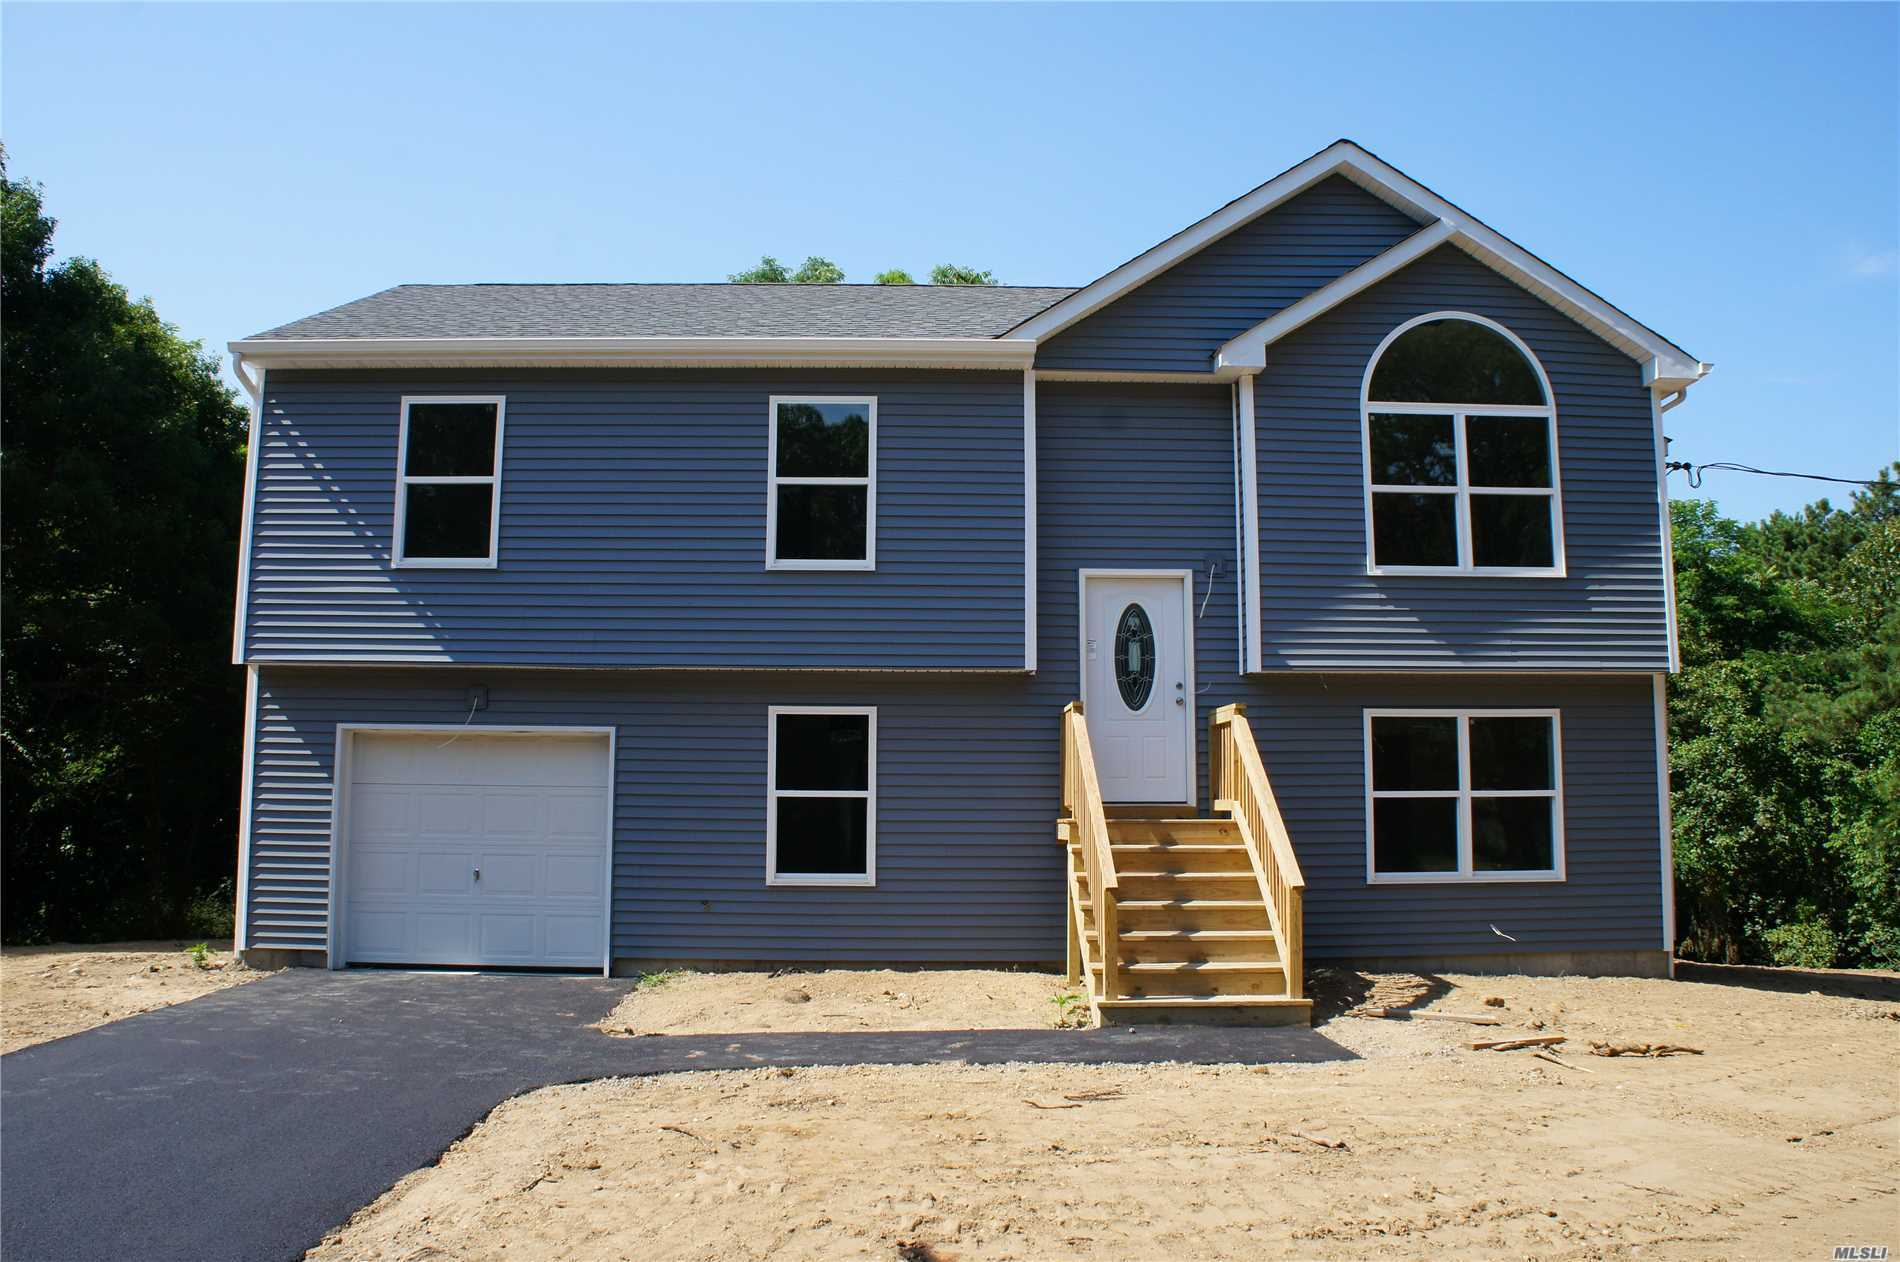 New Hi- Ranch At An Incredible Price! 3 Bedrooms, 2 Full Baths, Hard Wood Floors In The Living Room, Dining Room And Kitchen. Carpet In The Bedrooms. Cac And More! Must See.